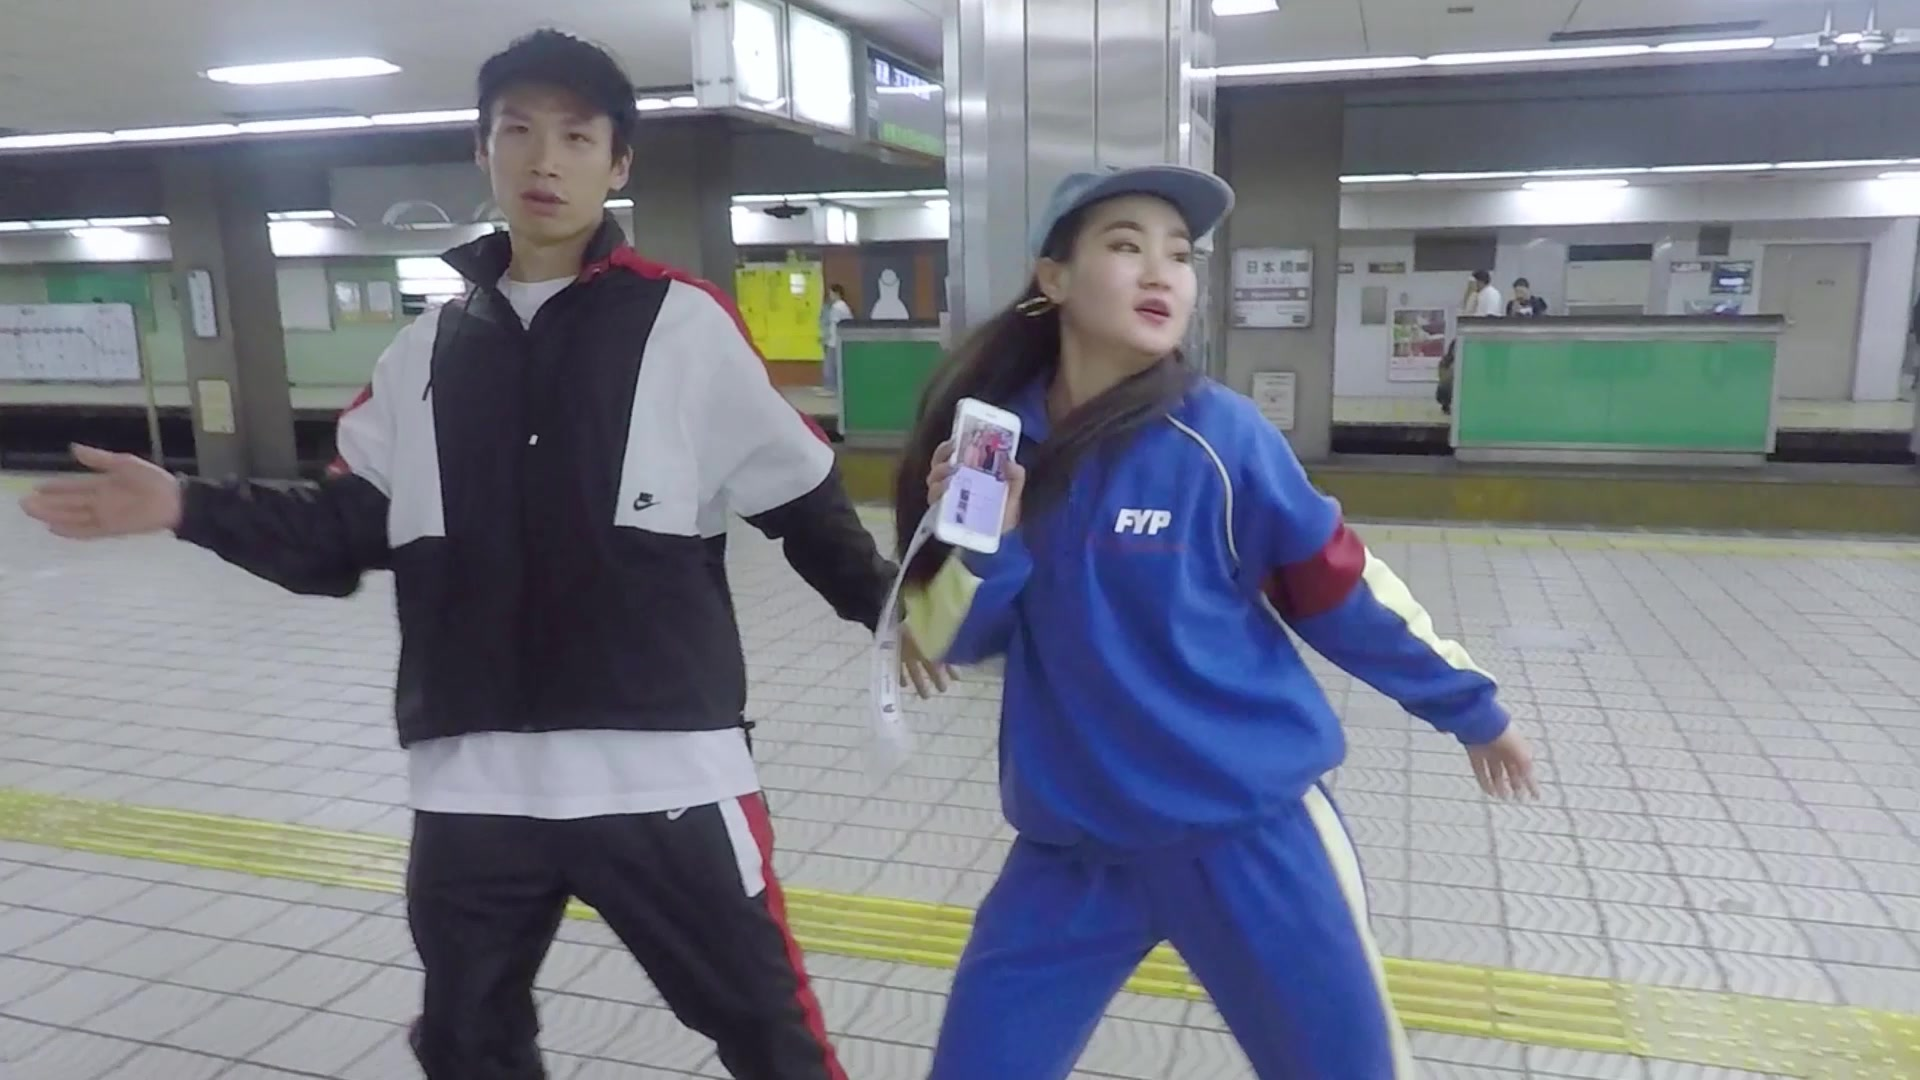 CASTER舞蹈作品 ︱Colin&Amy - Swag in osaka metro